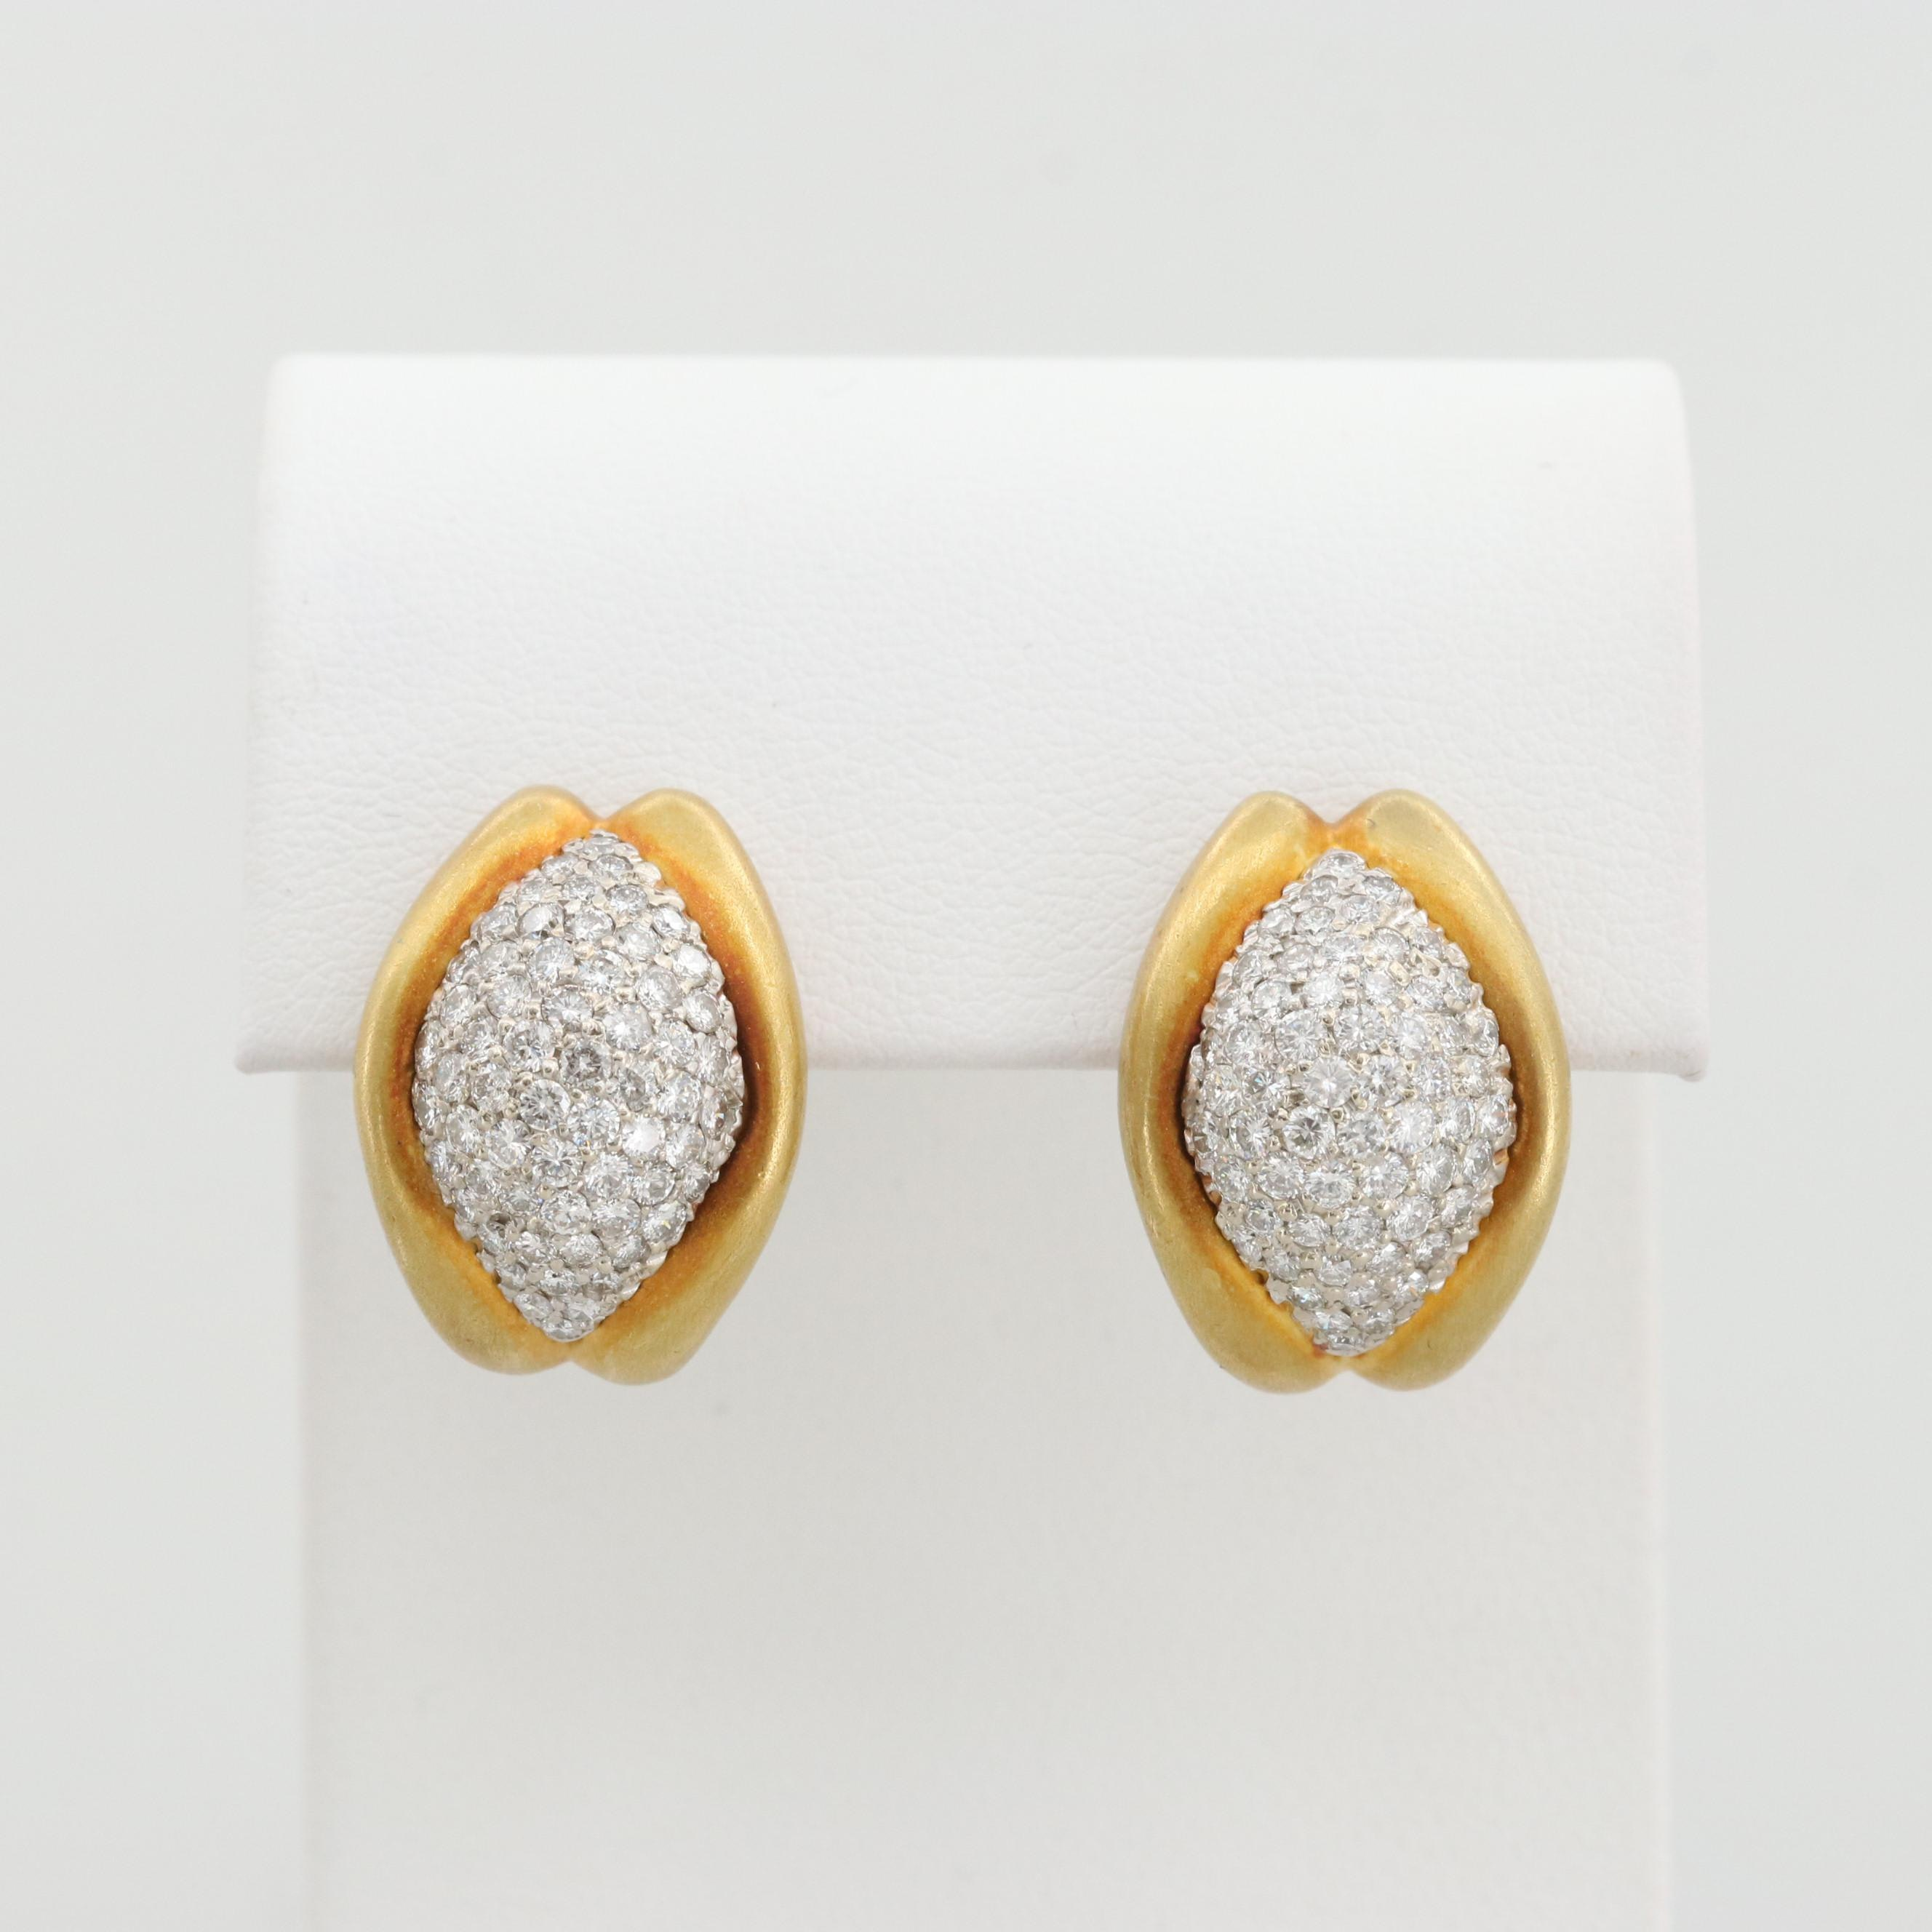 18K Yellow Gold 2.13 CTW Diamond Earrings with 14K Posts and Clips